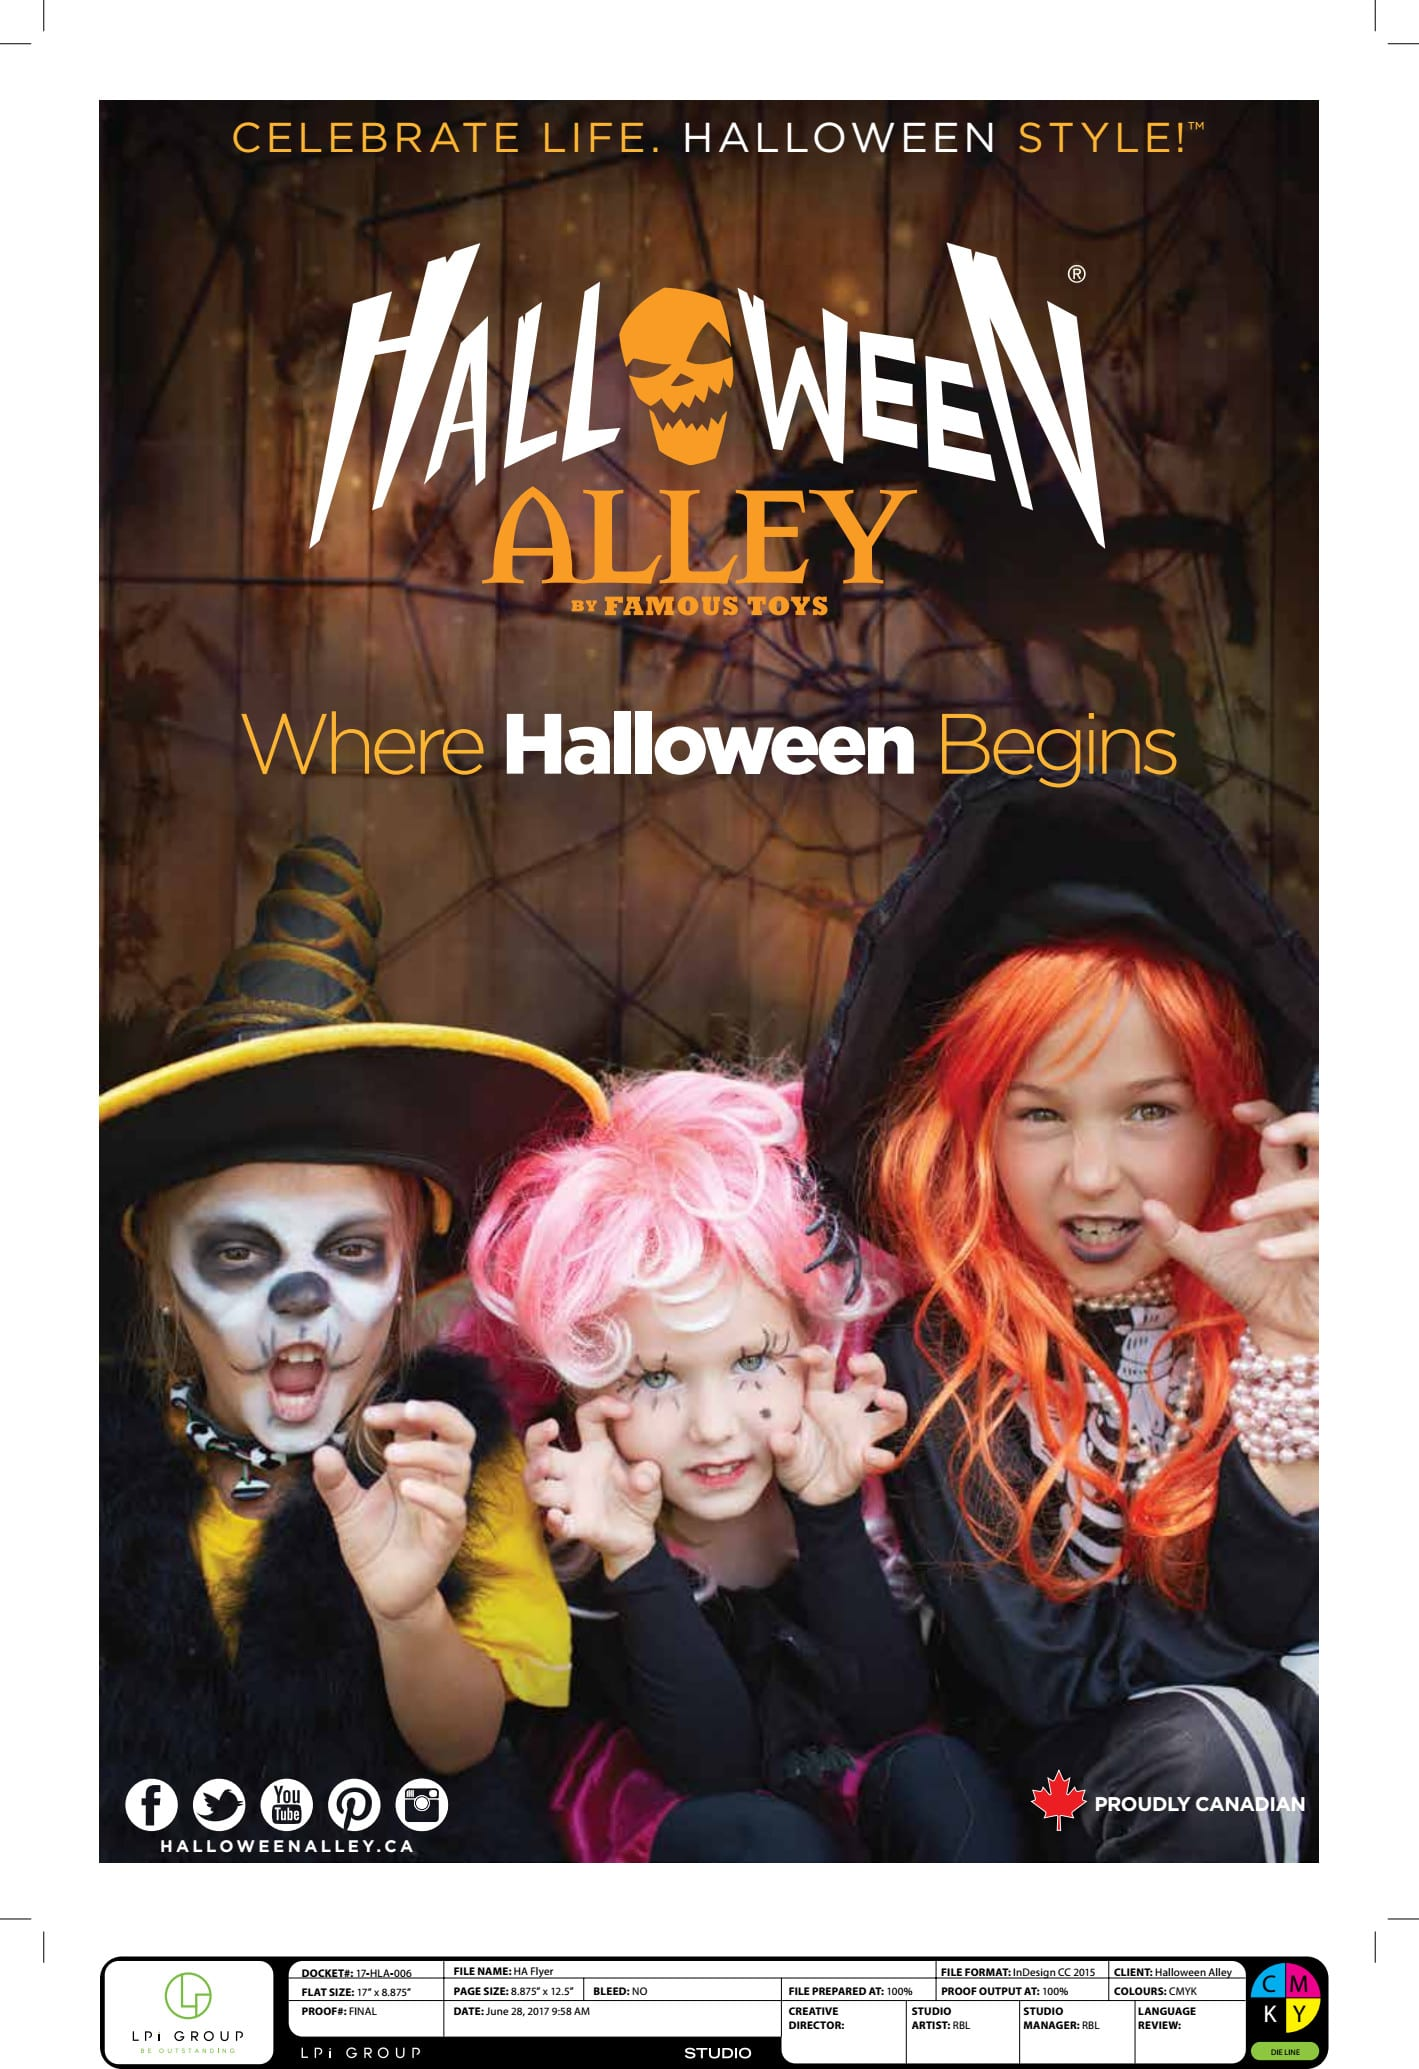 Halloween Alley: Product Descriptions